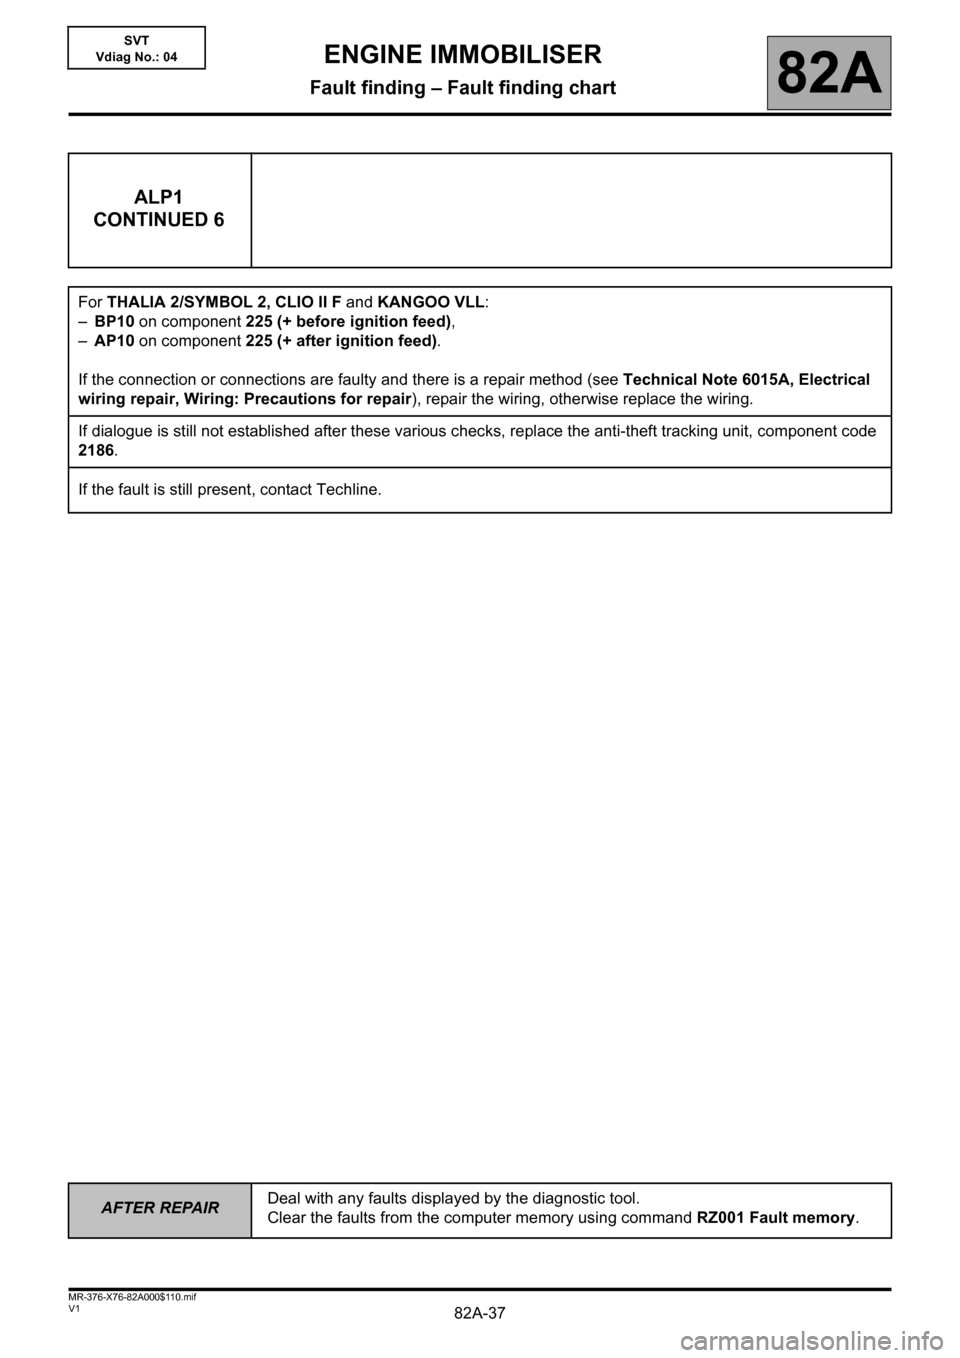 RENAULT KANGOO 2013 X61 / 2.G Engine Immobiliser Workshop Manual, Page 37